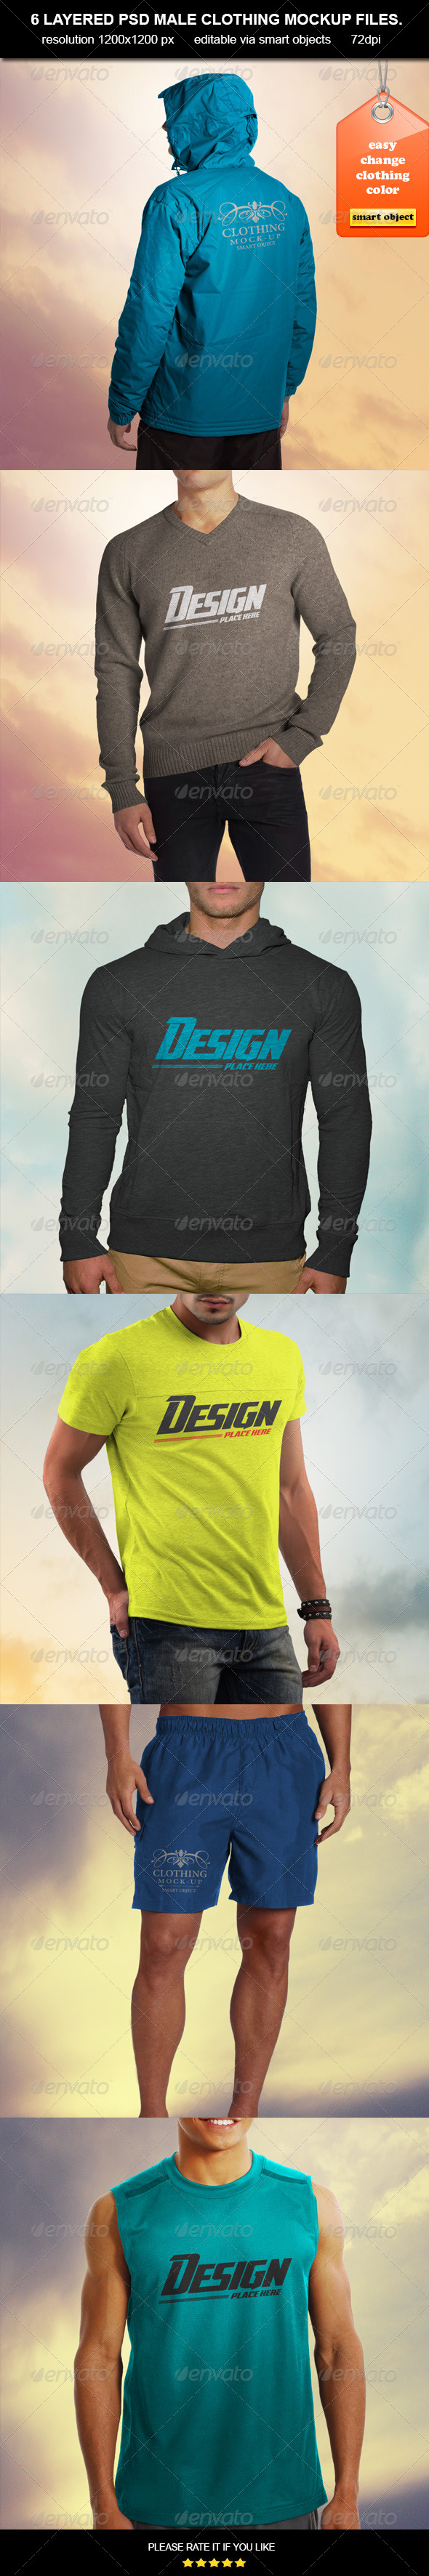 GraphicRiver Clothing MockUp-Male 6916928